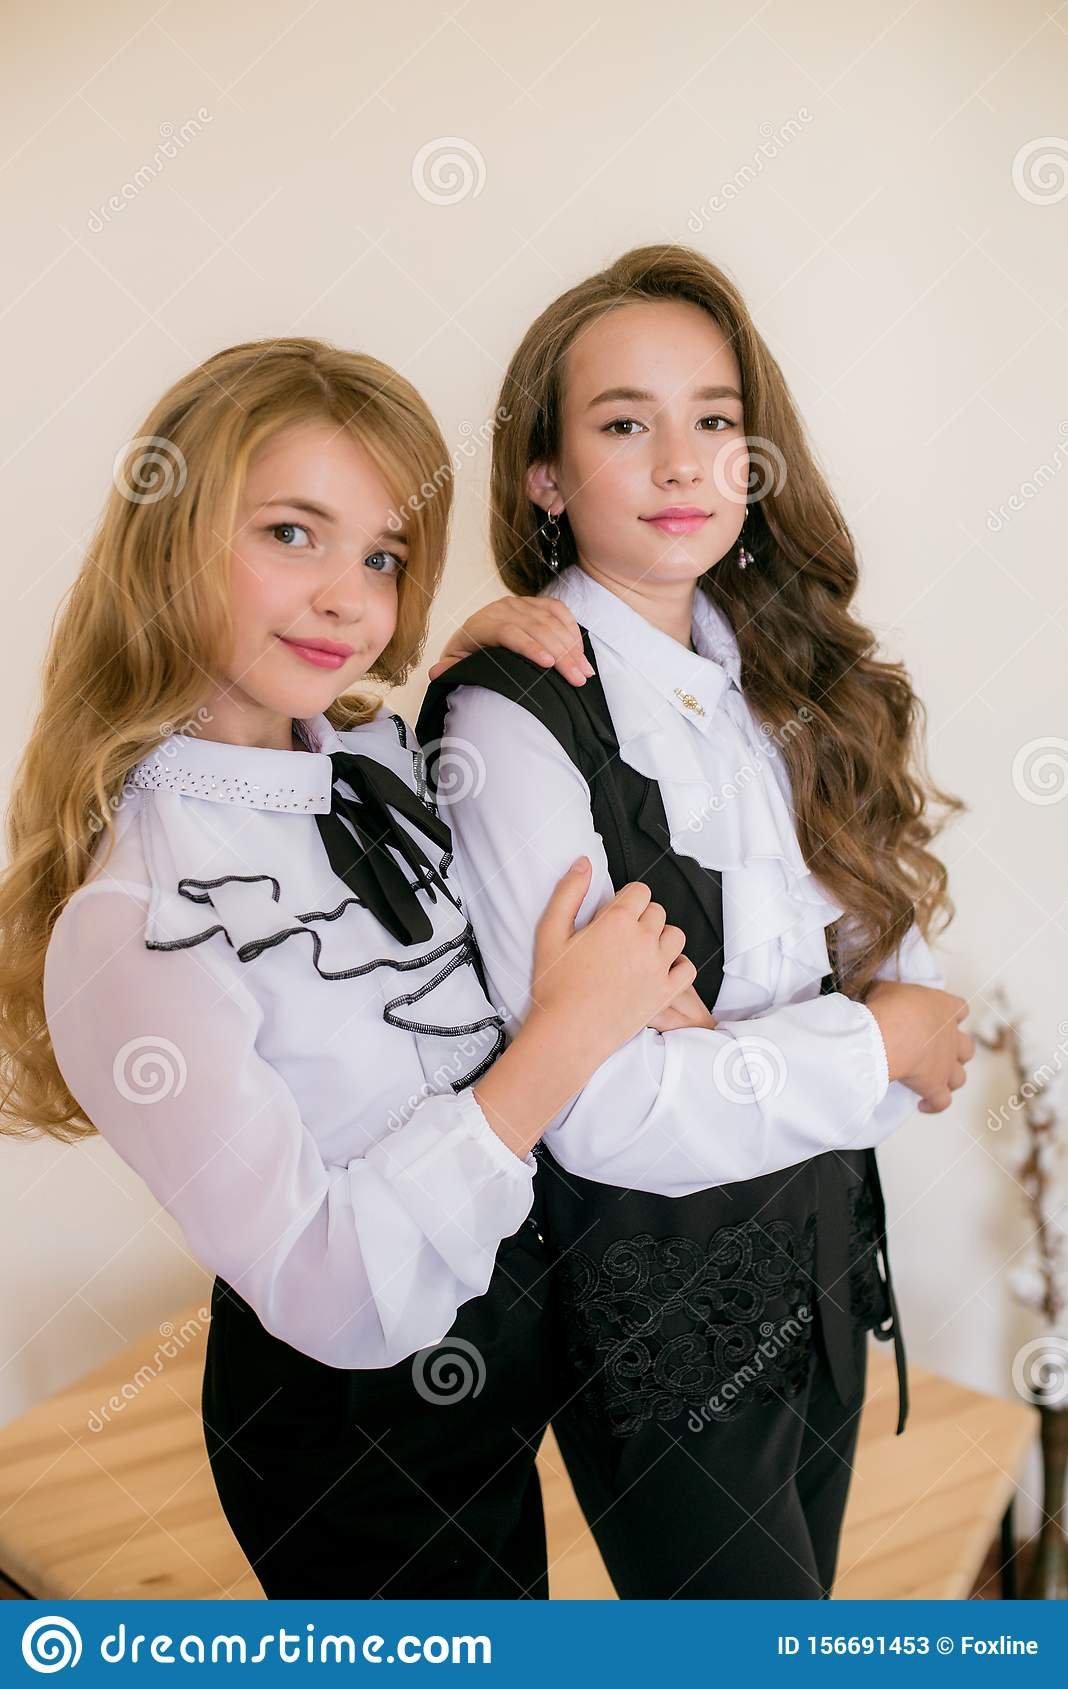 Two Cute Girls Schoolgirls With Long Curly Hair In